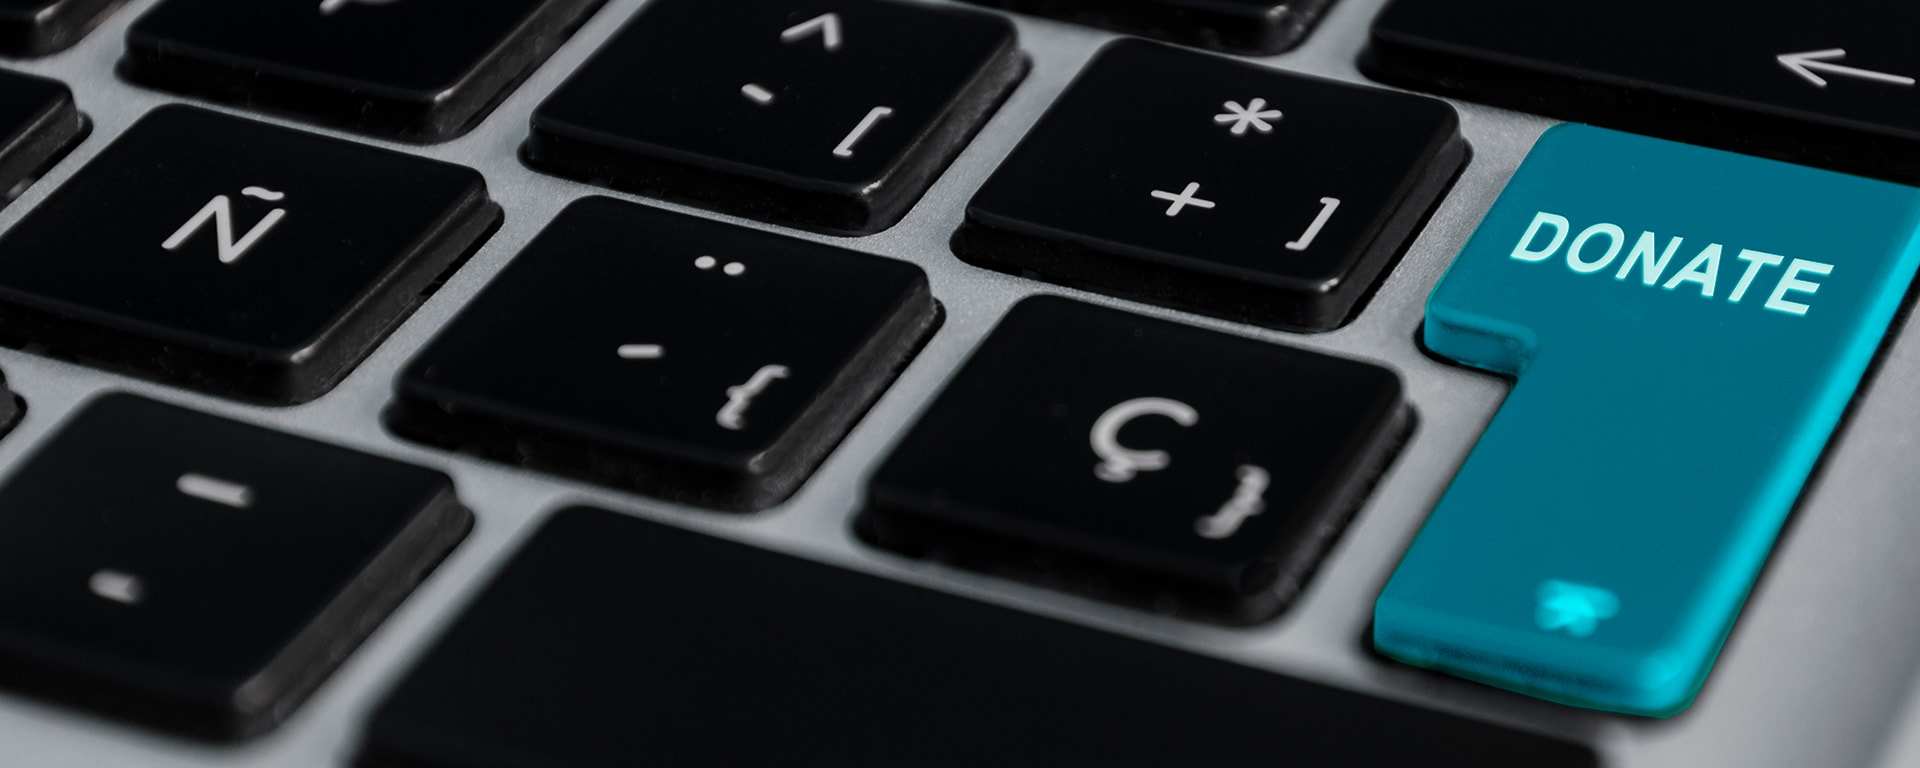 Next step in sustainability blog image - Laptop with donate button